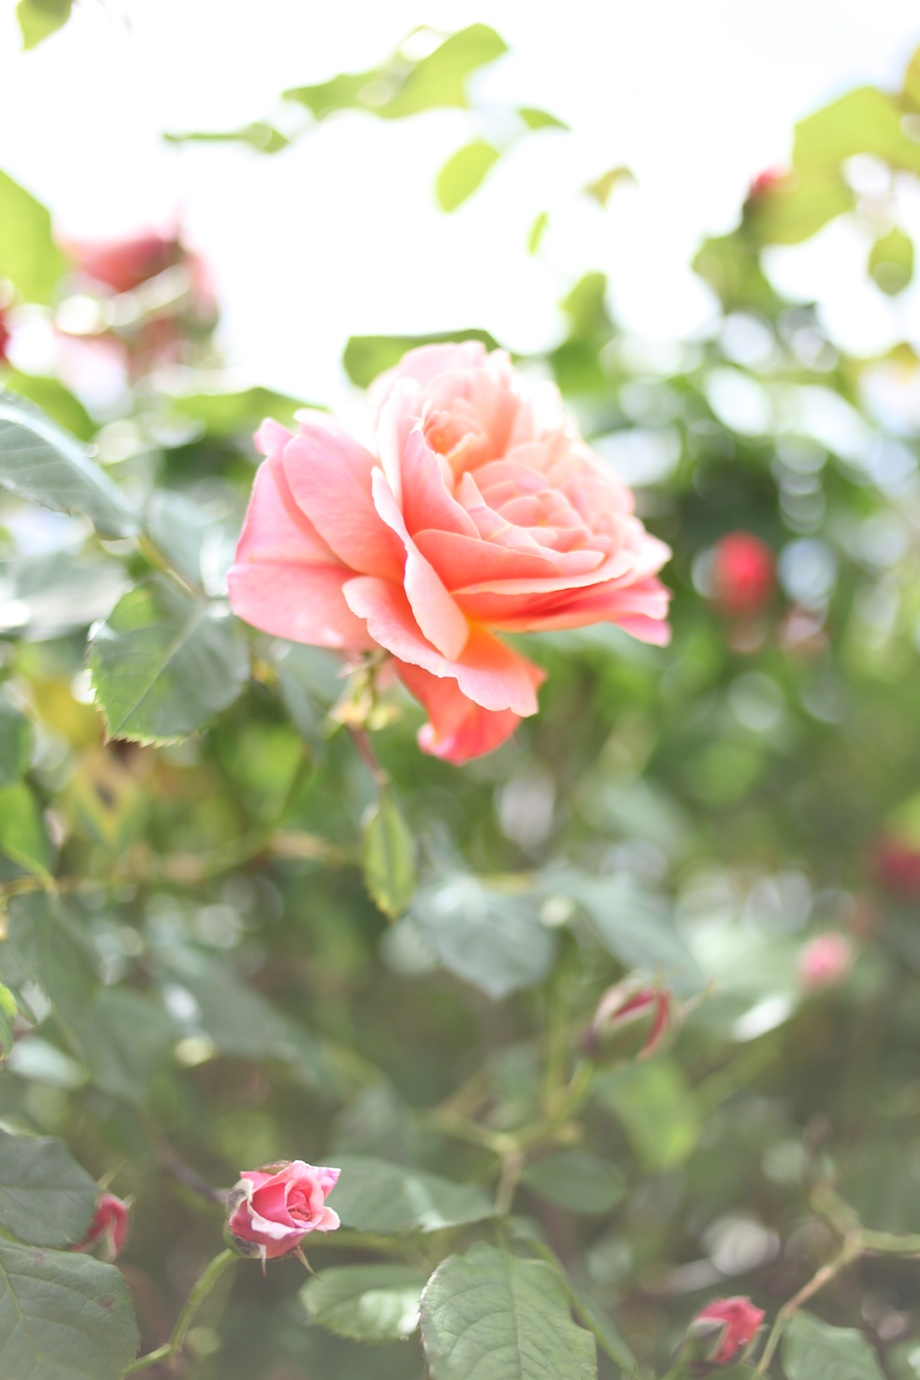 pink rose gem photo